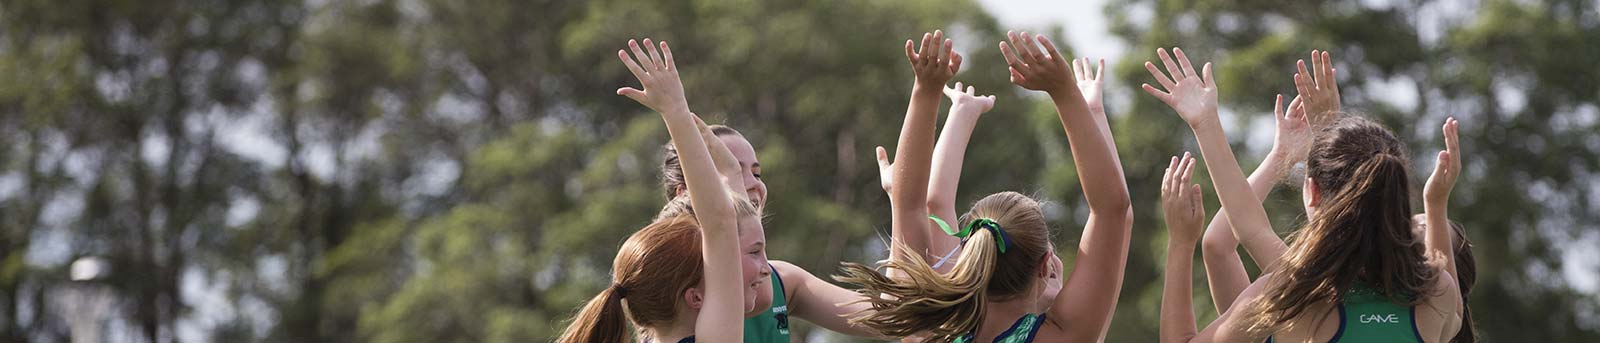 Netball girls hands in the air